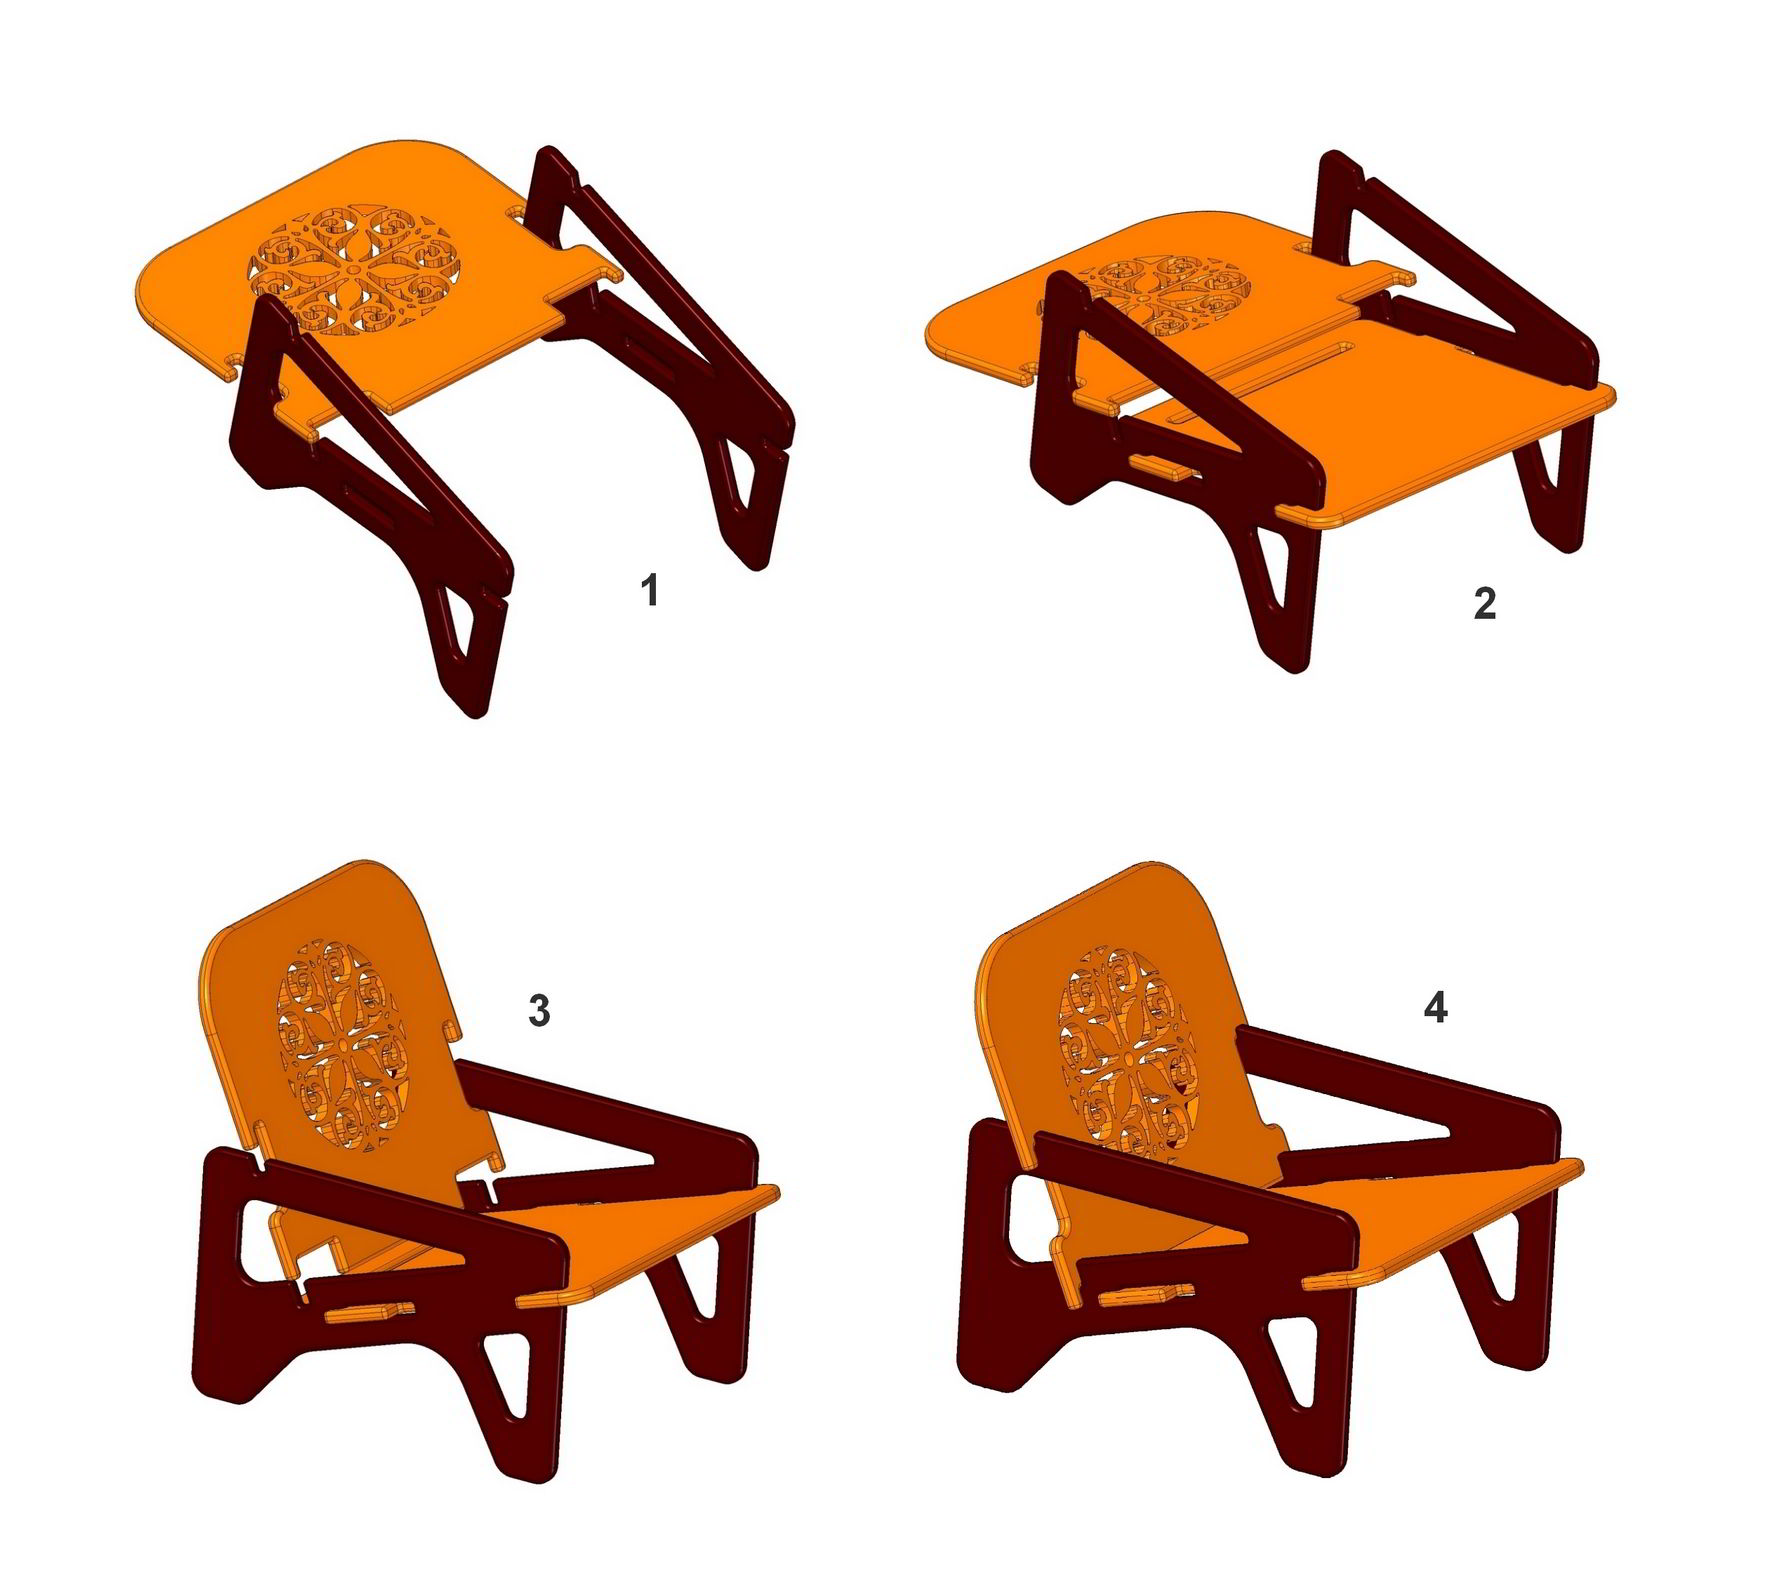 How To Assemble Knock Down Chair